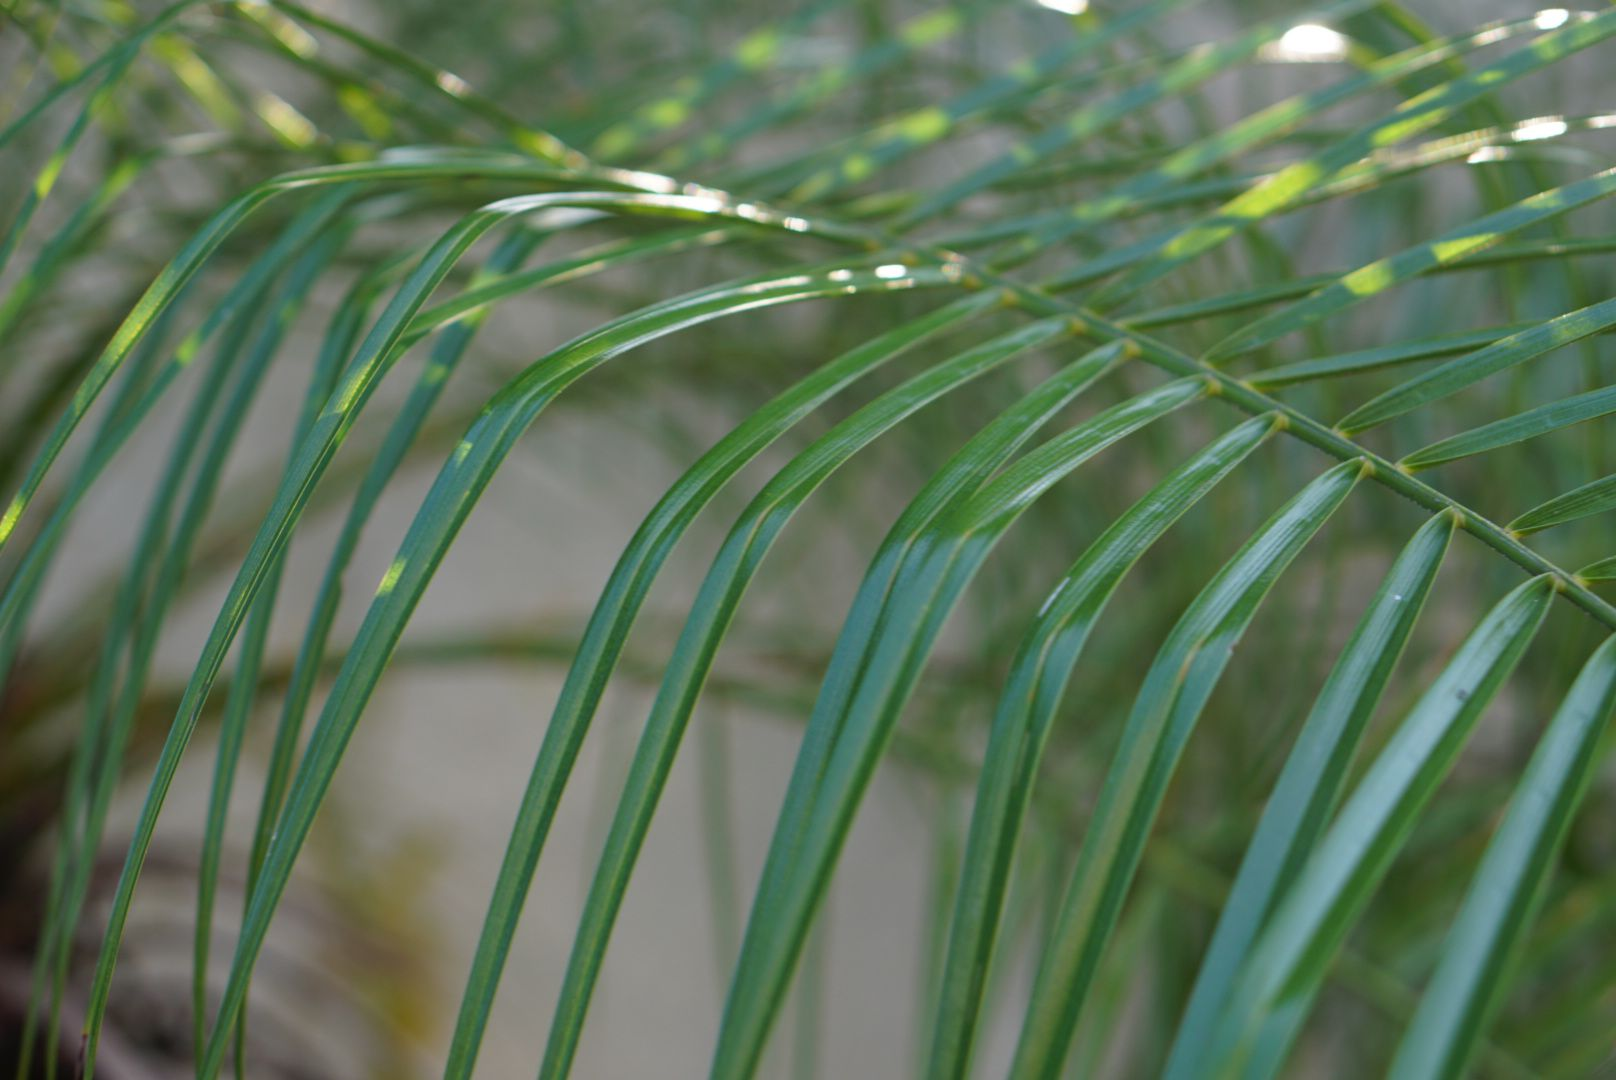 Queen palm fronds with glossy leaves closeup